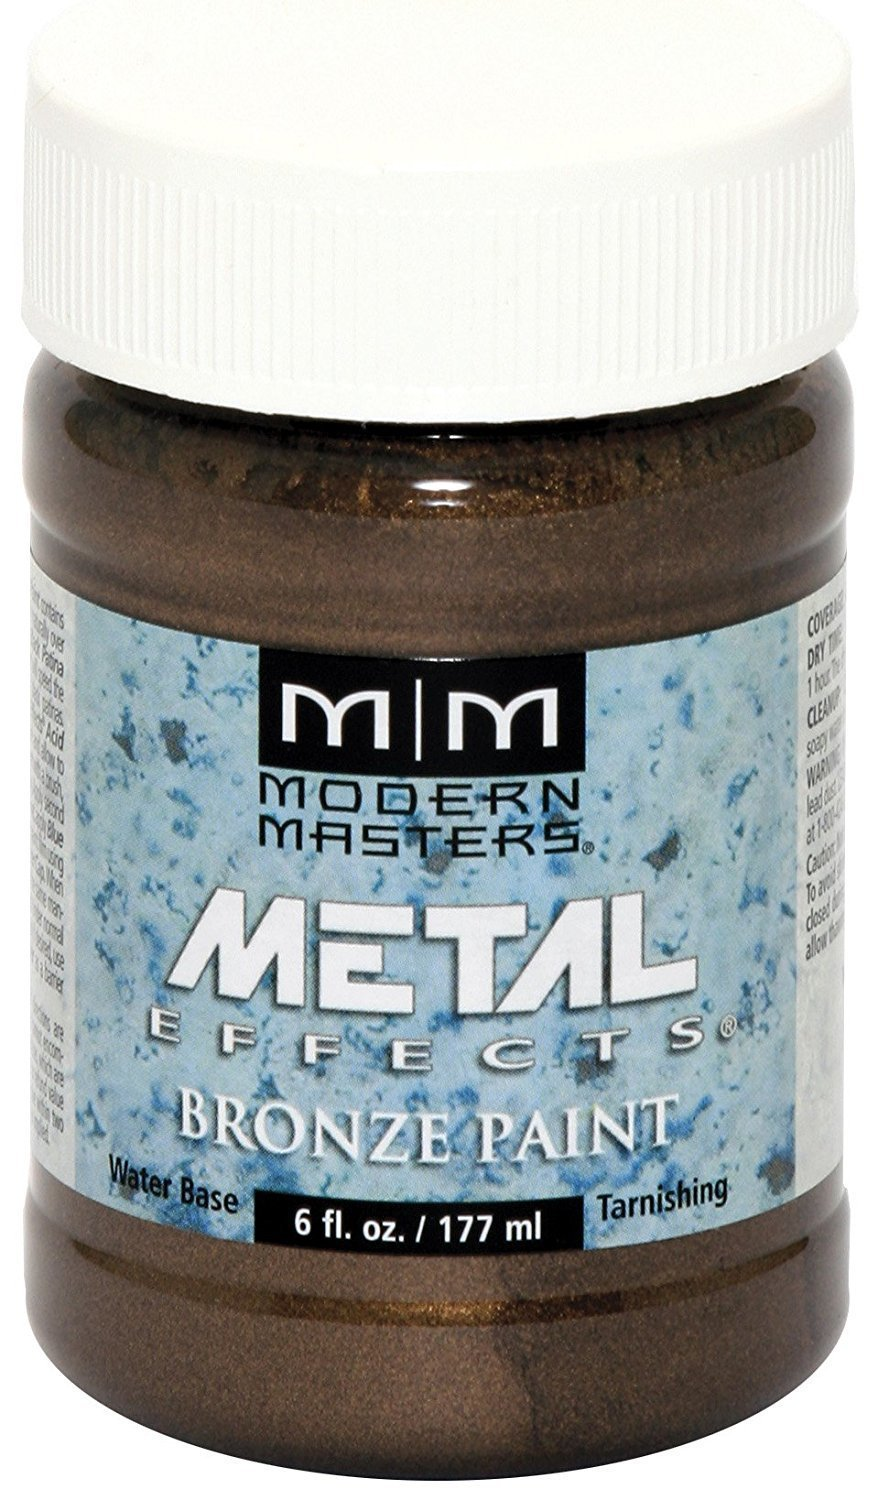 Modern Masters Metal Effects Bronze Paint